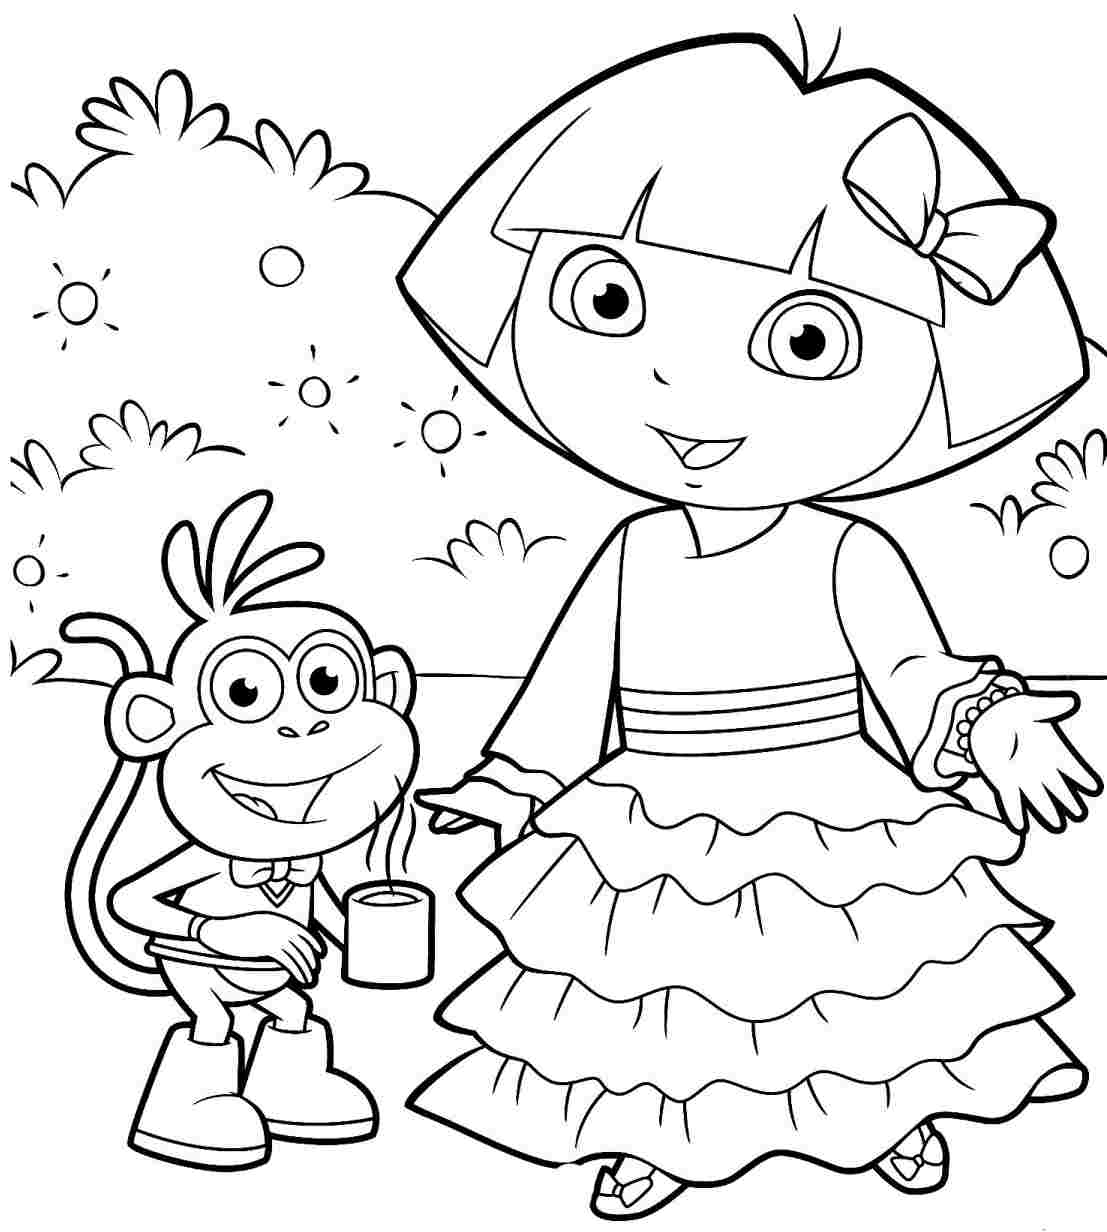 dora coloring print download dora coloring pages to learn new things dora coloring 1 1